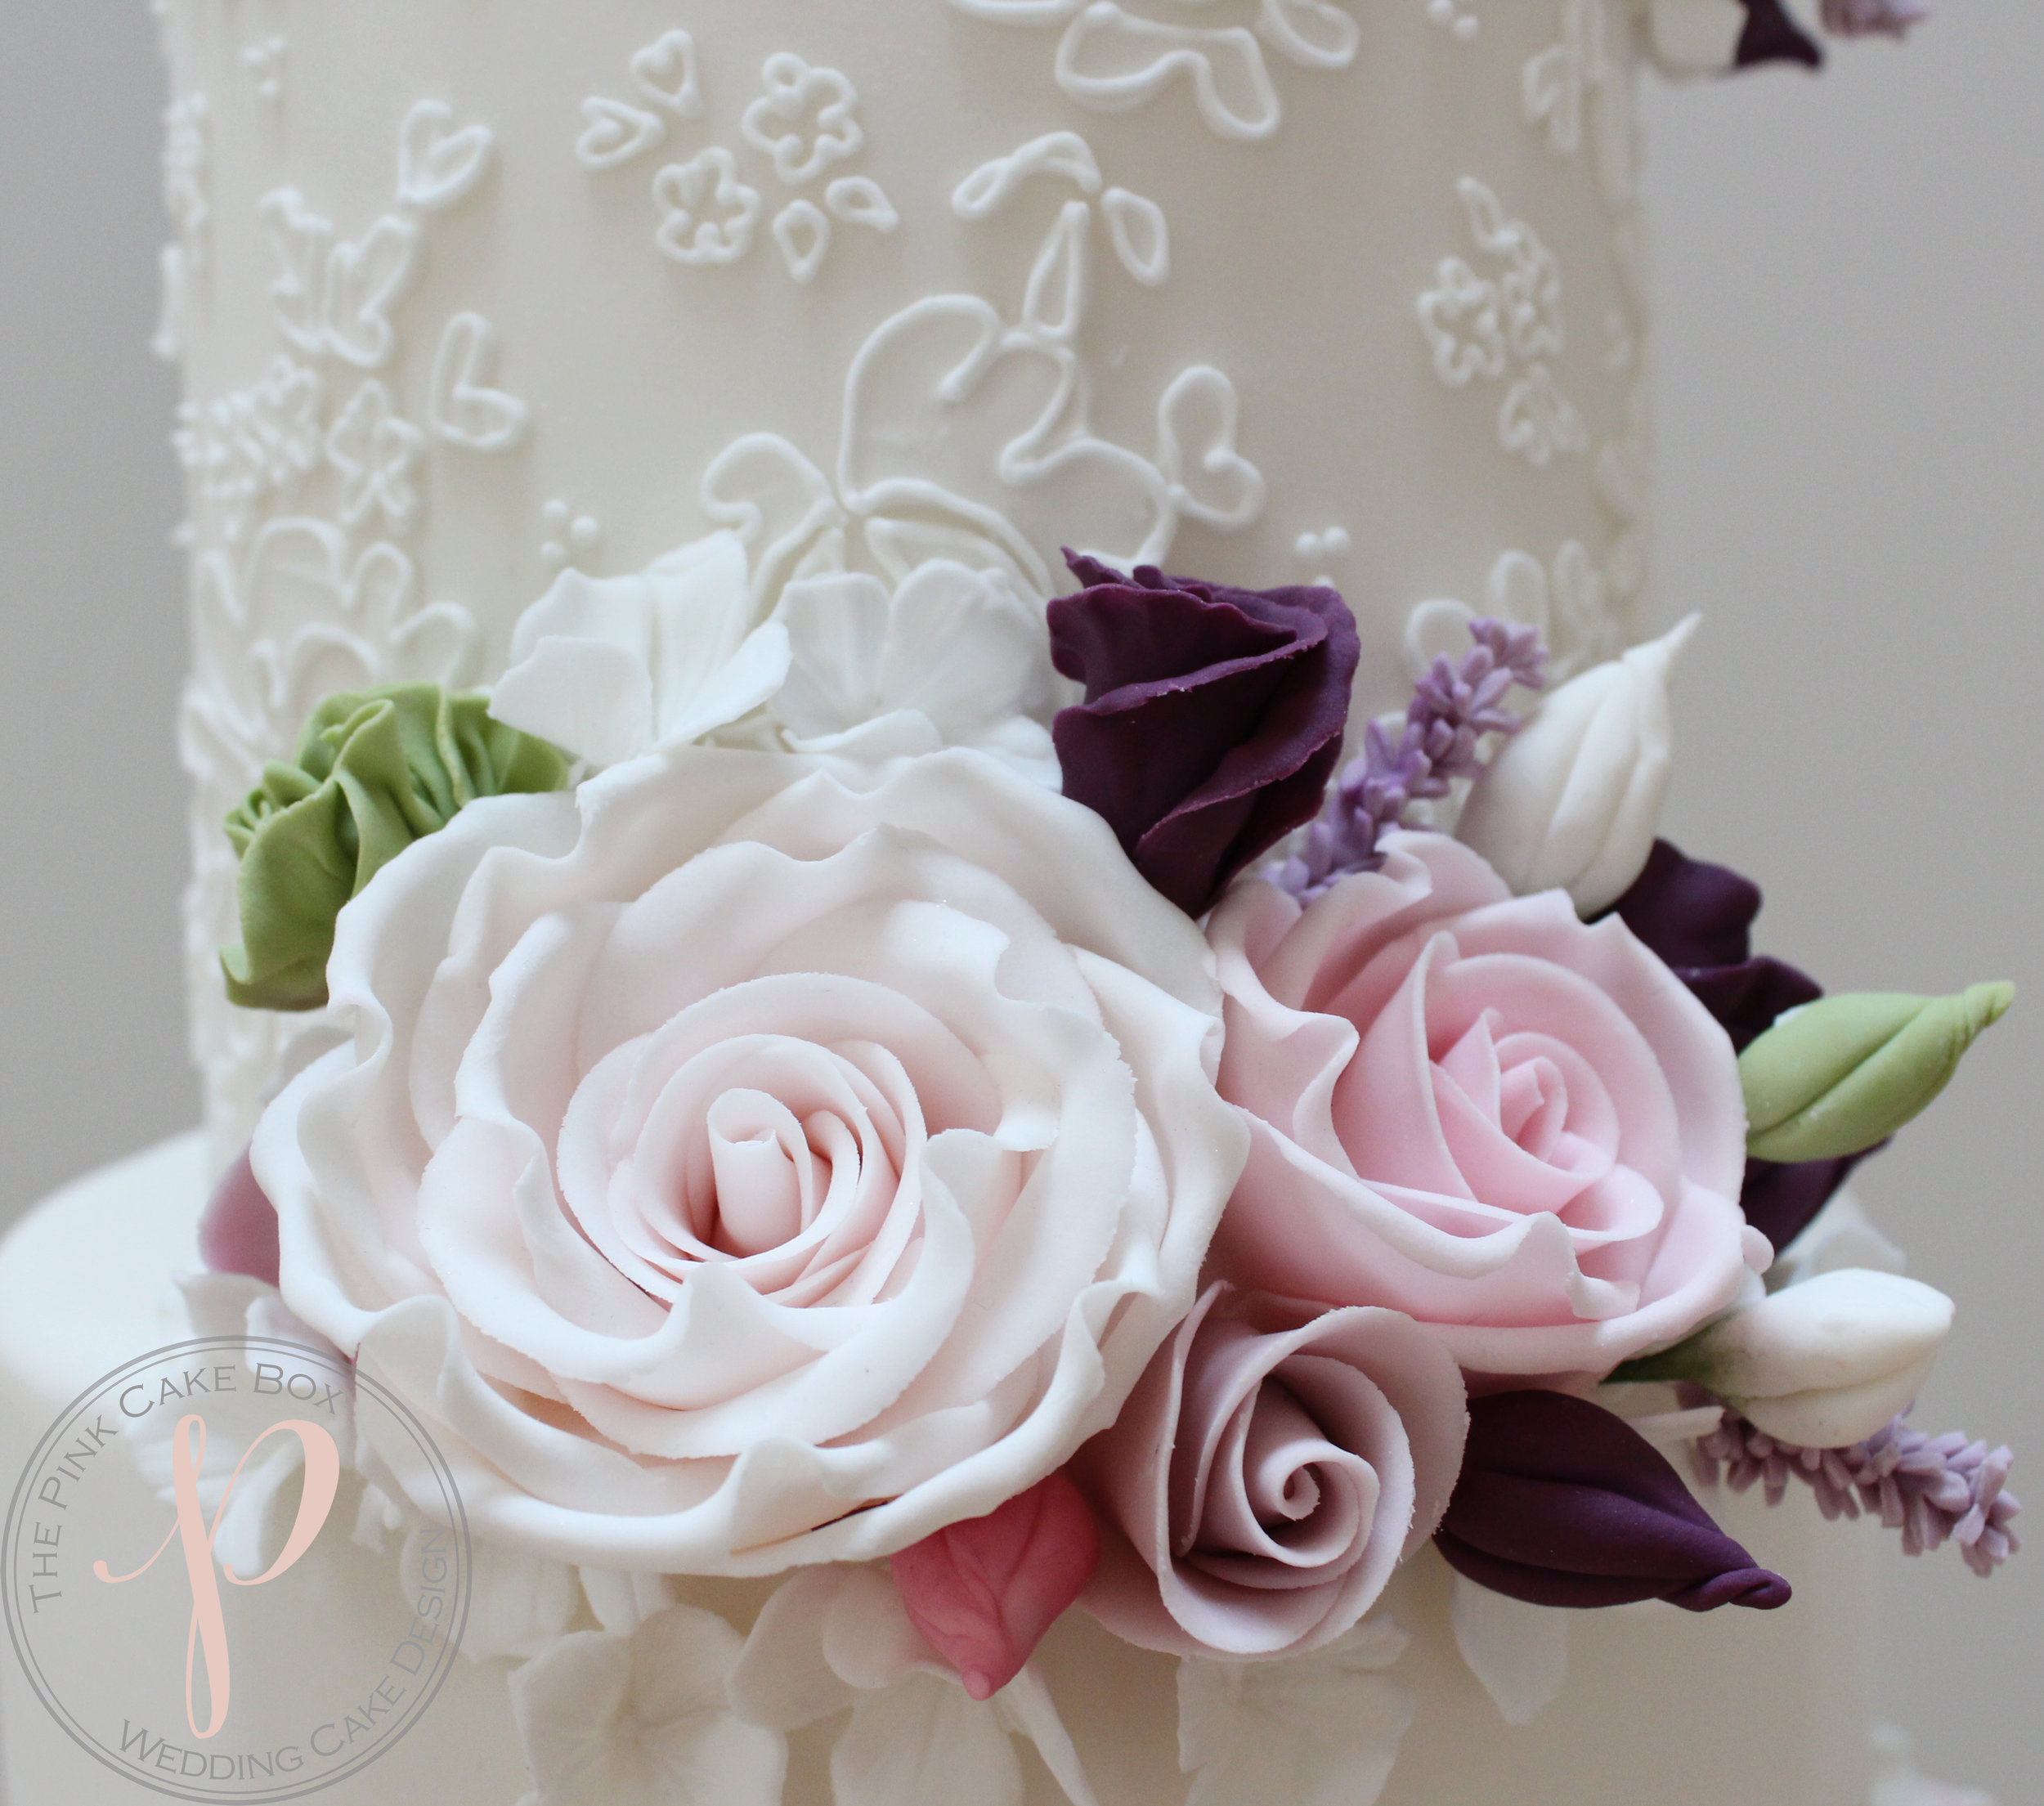 sugar flowers pinks lilac lace wedding cake.jpg